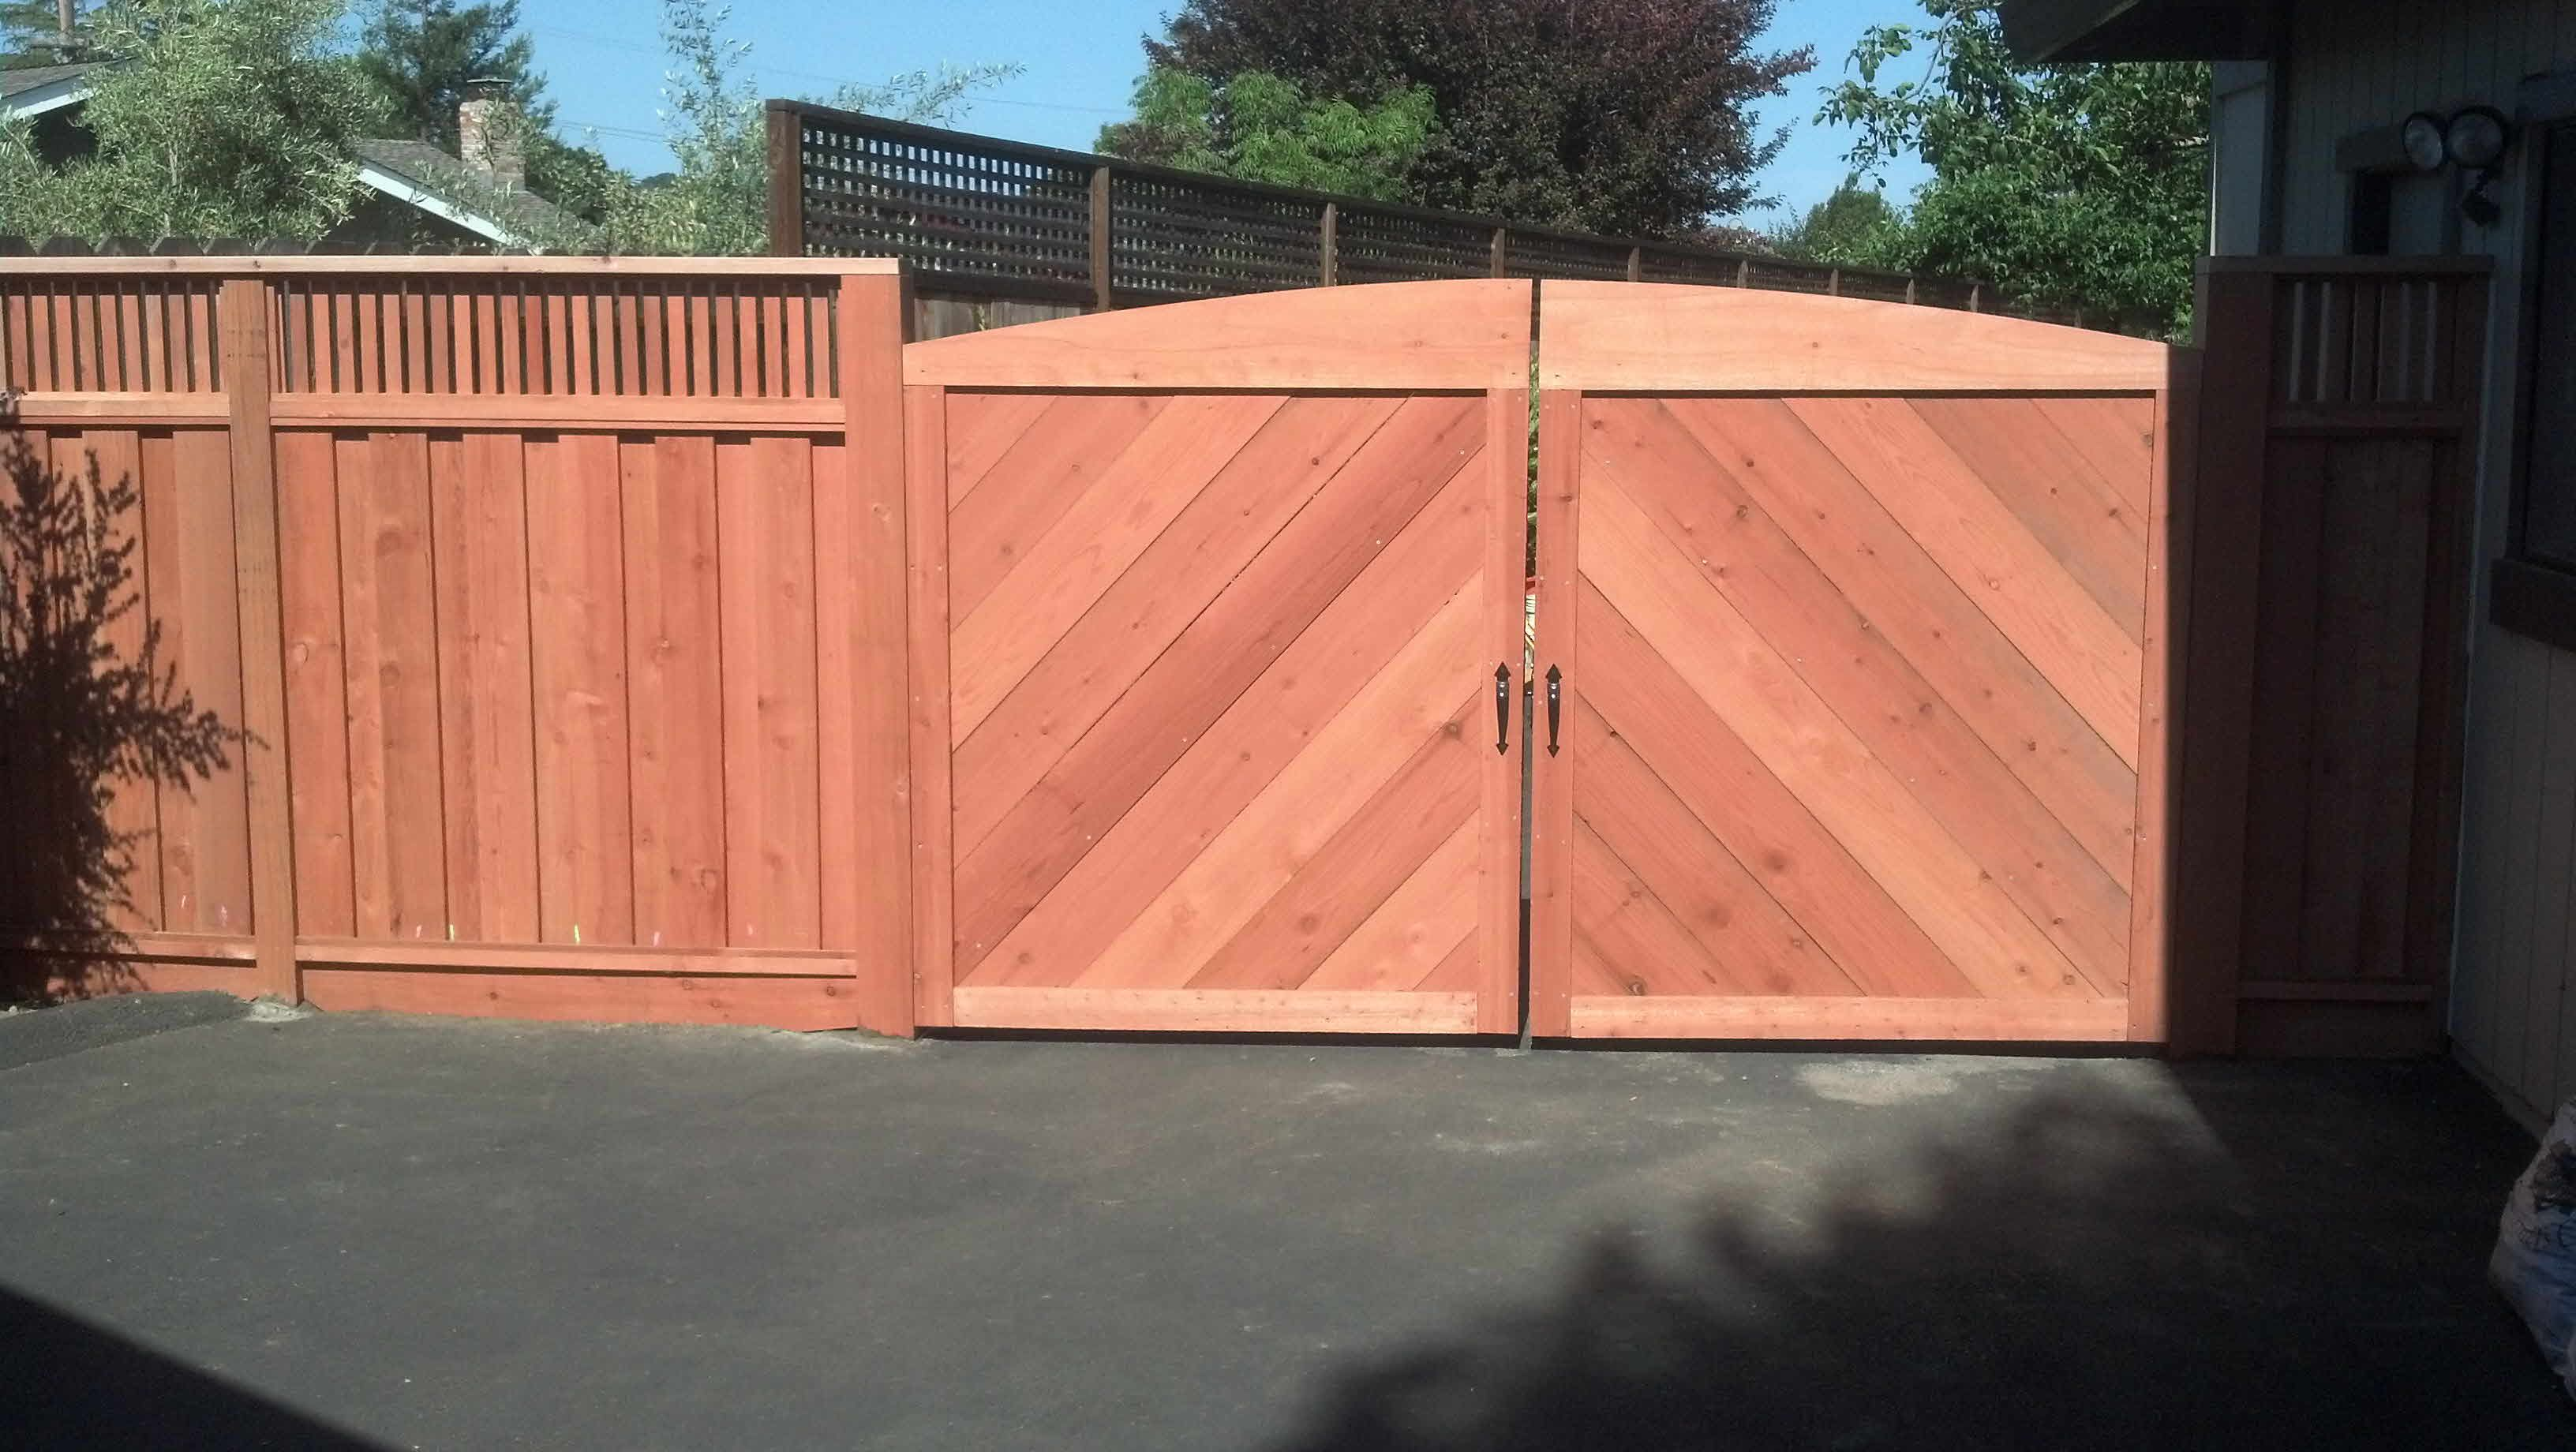 redwood fencing board on board with vertical top lattice